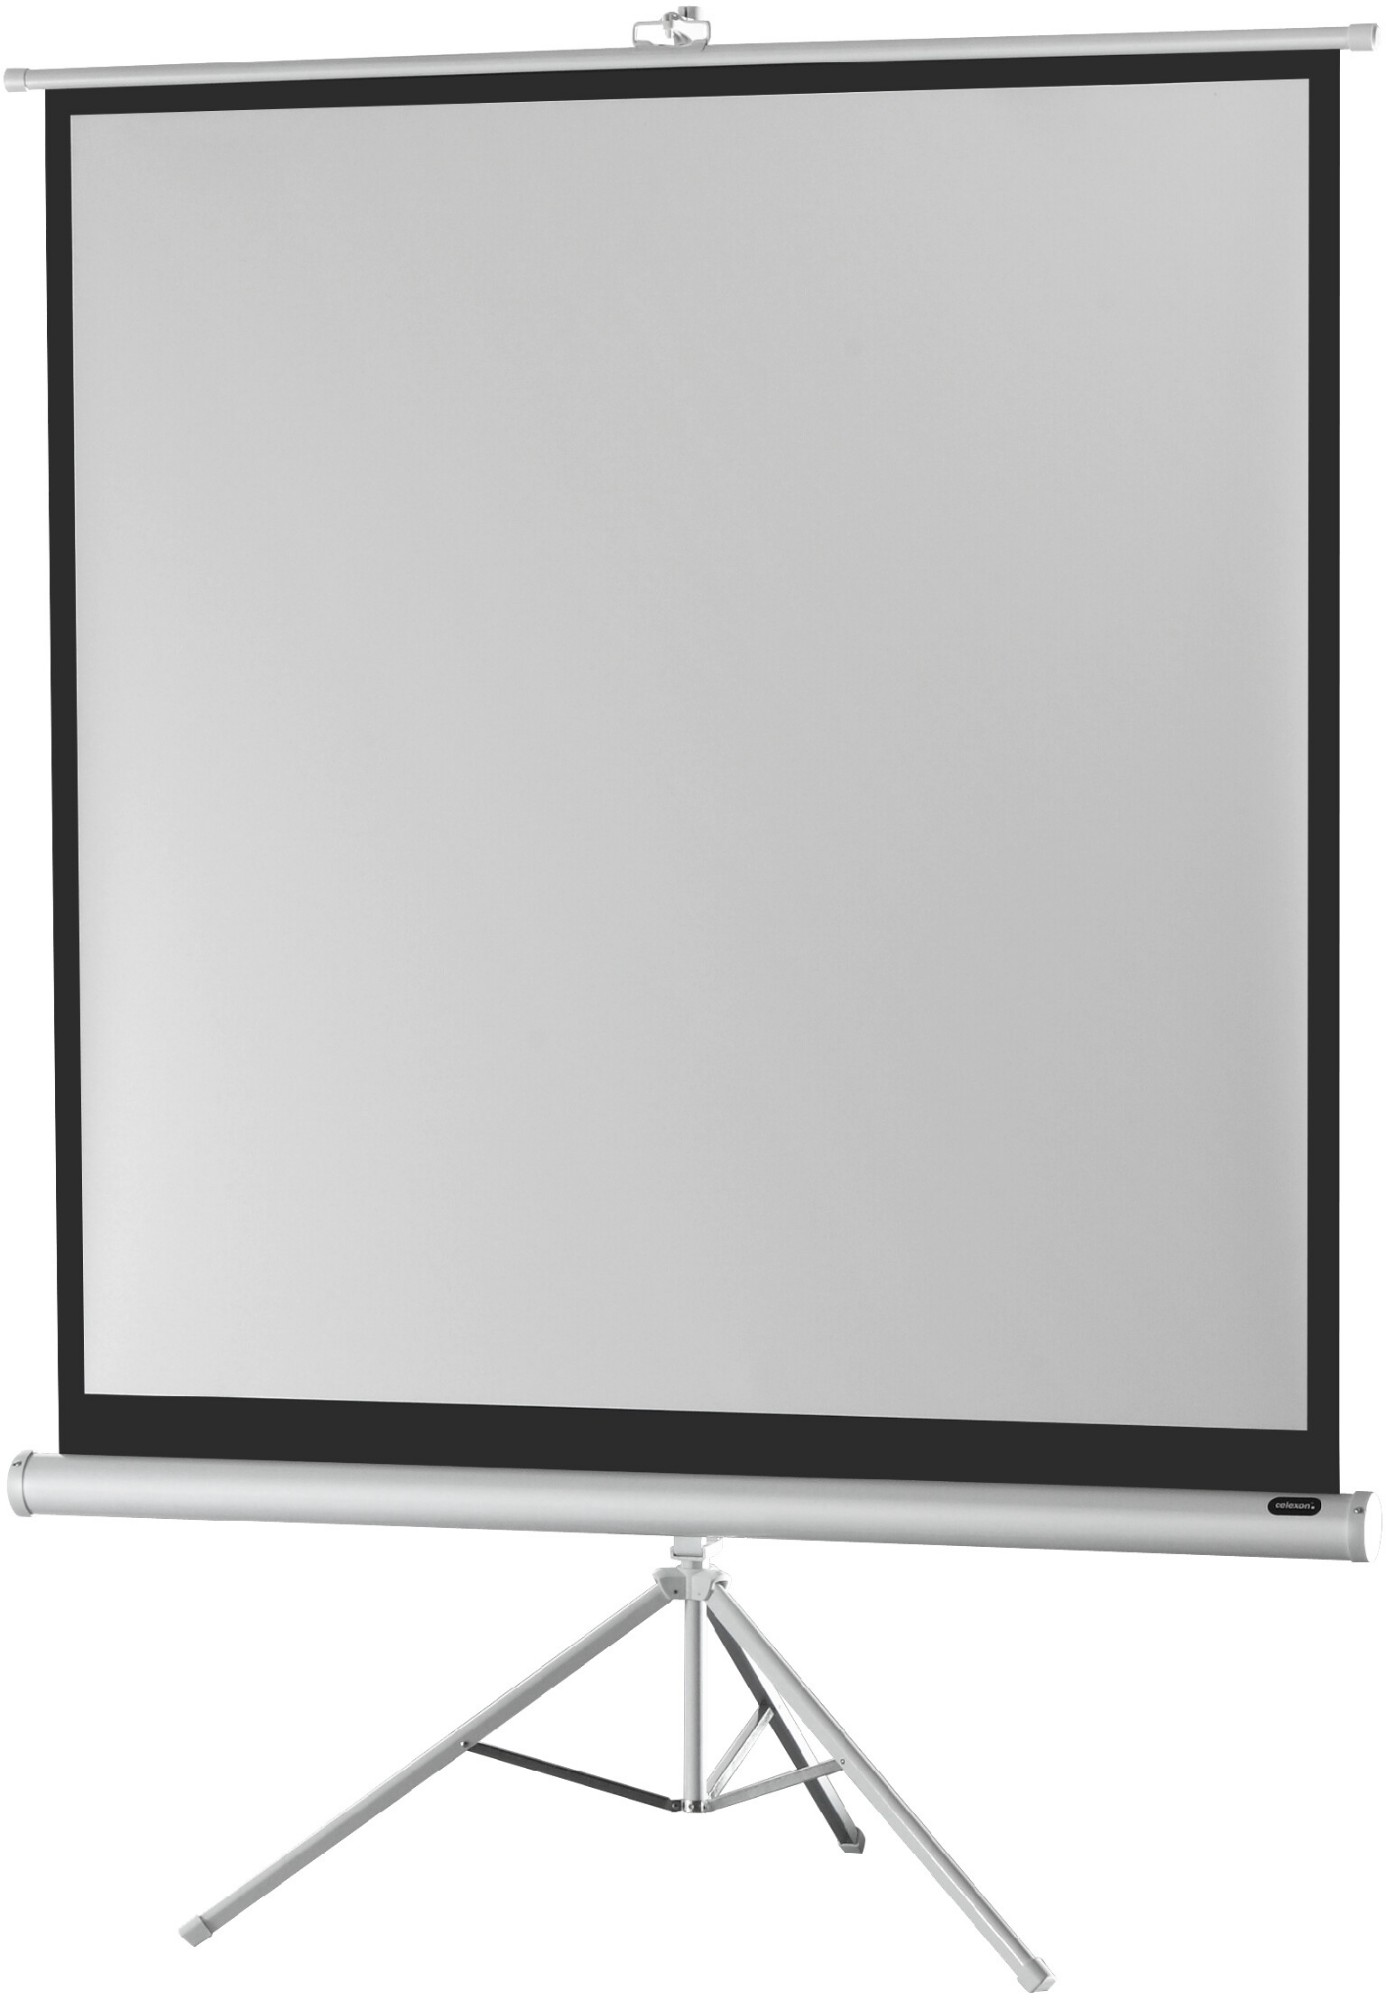 Celexon Tripod Economy 1:1 White projection screen